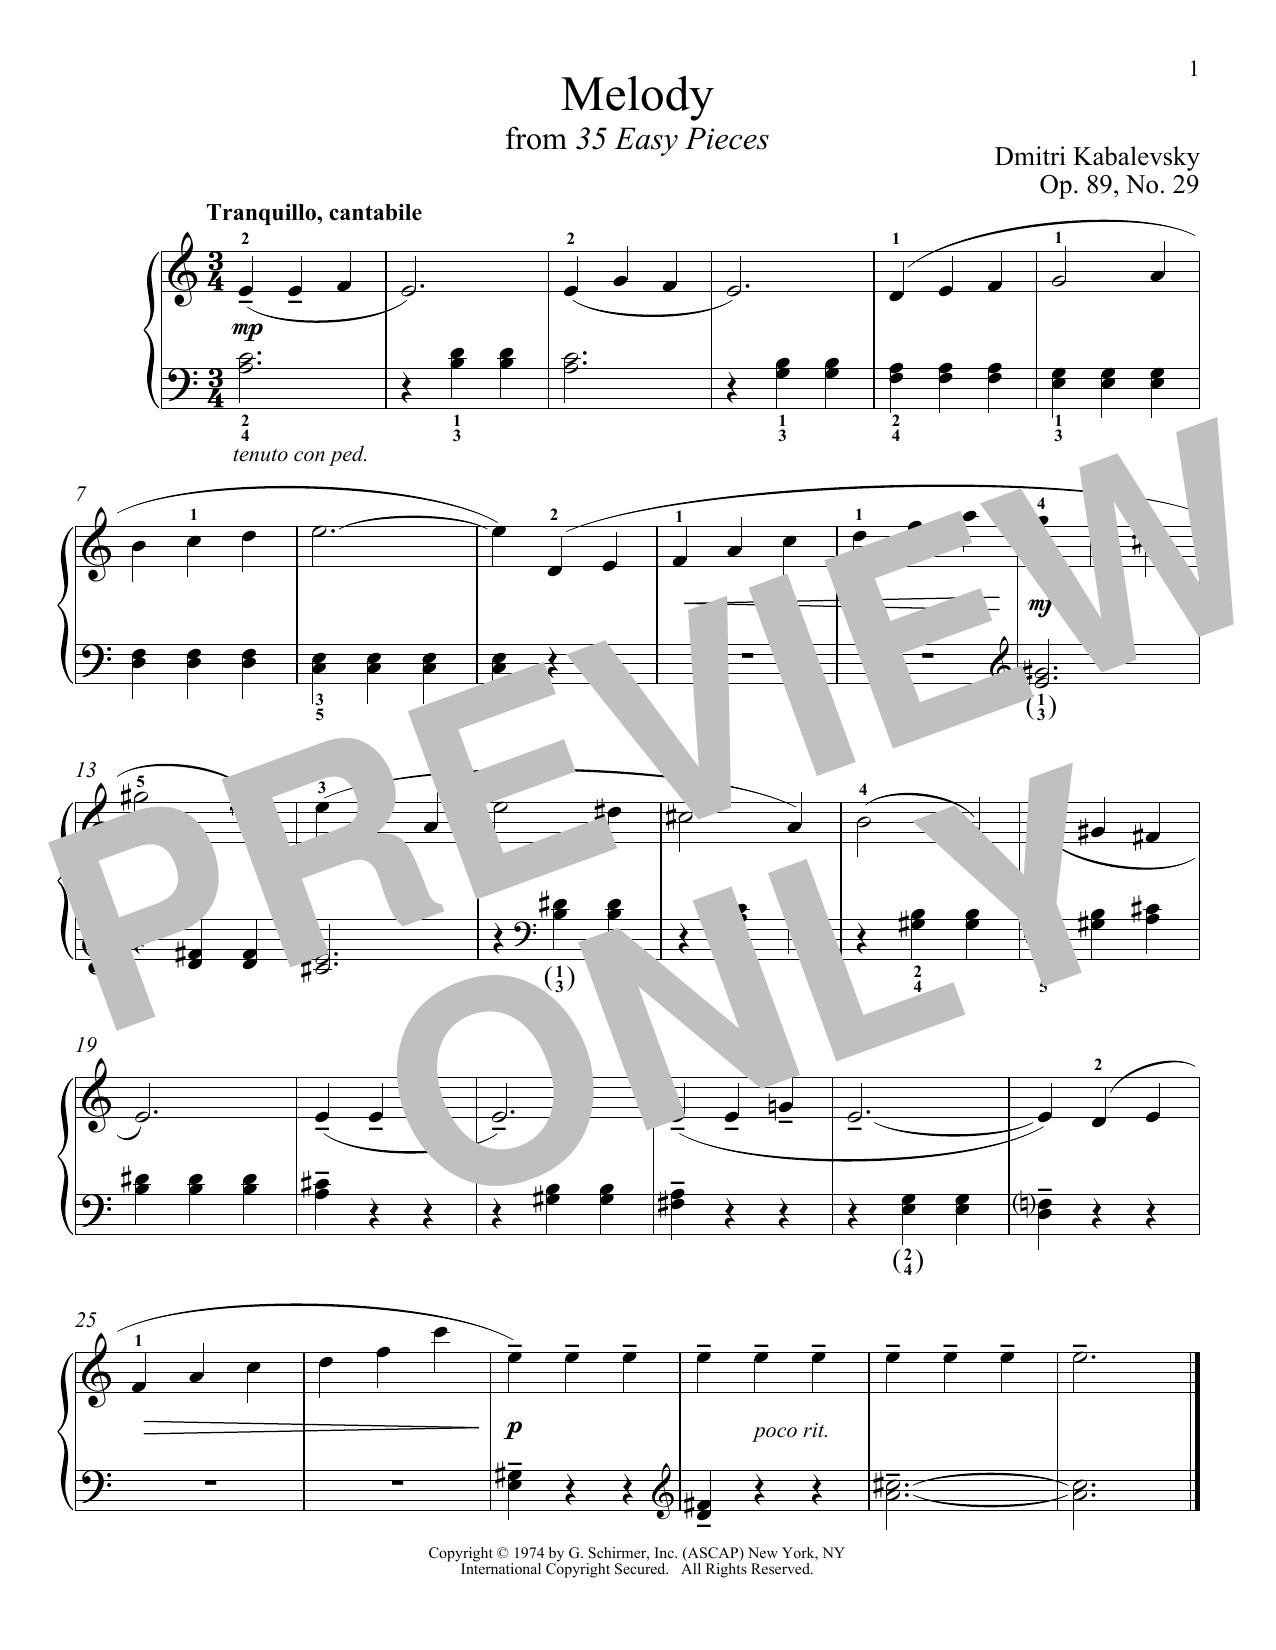 Download Dmitri Kabalevsky 'Melody, Op. 89, No. 29' Digital Sheet Music Notes & Chords and start playing in minutes